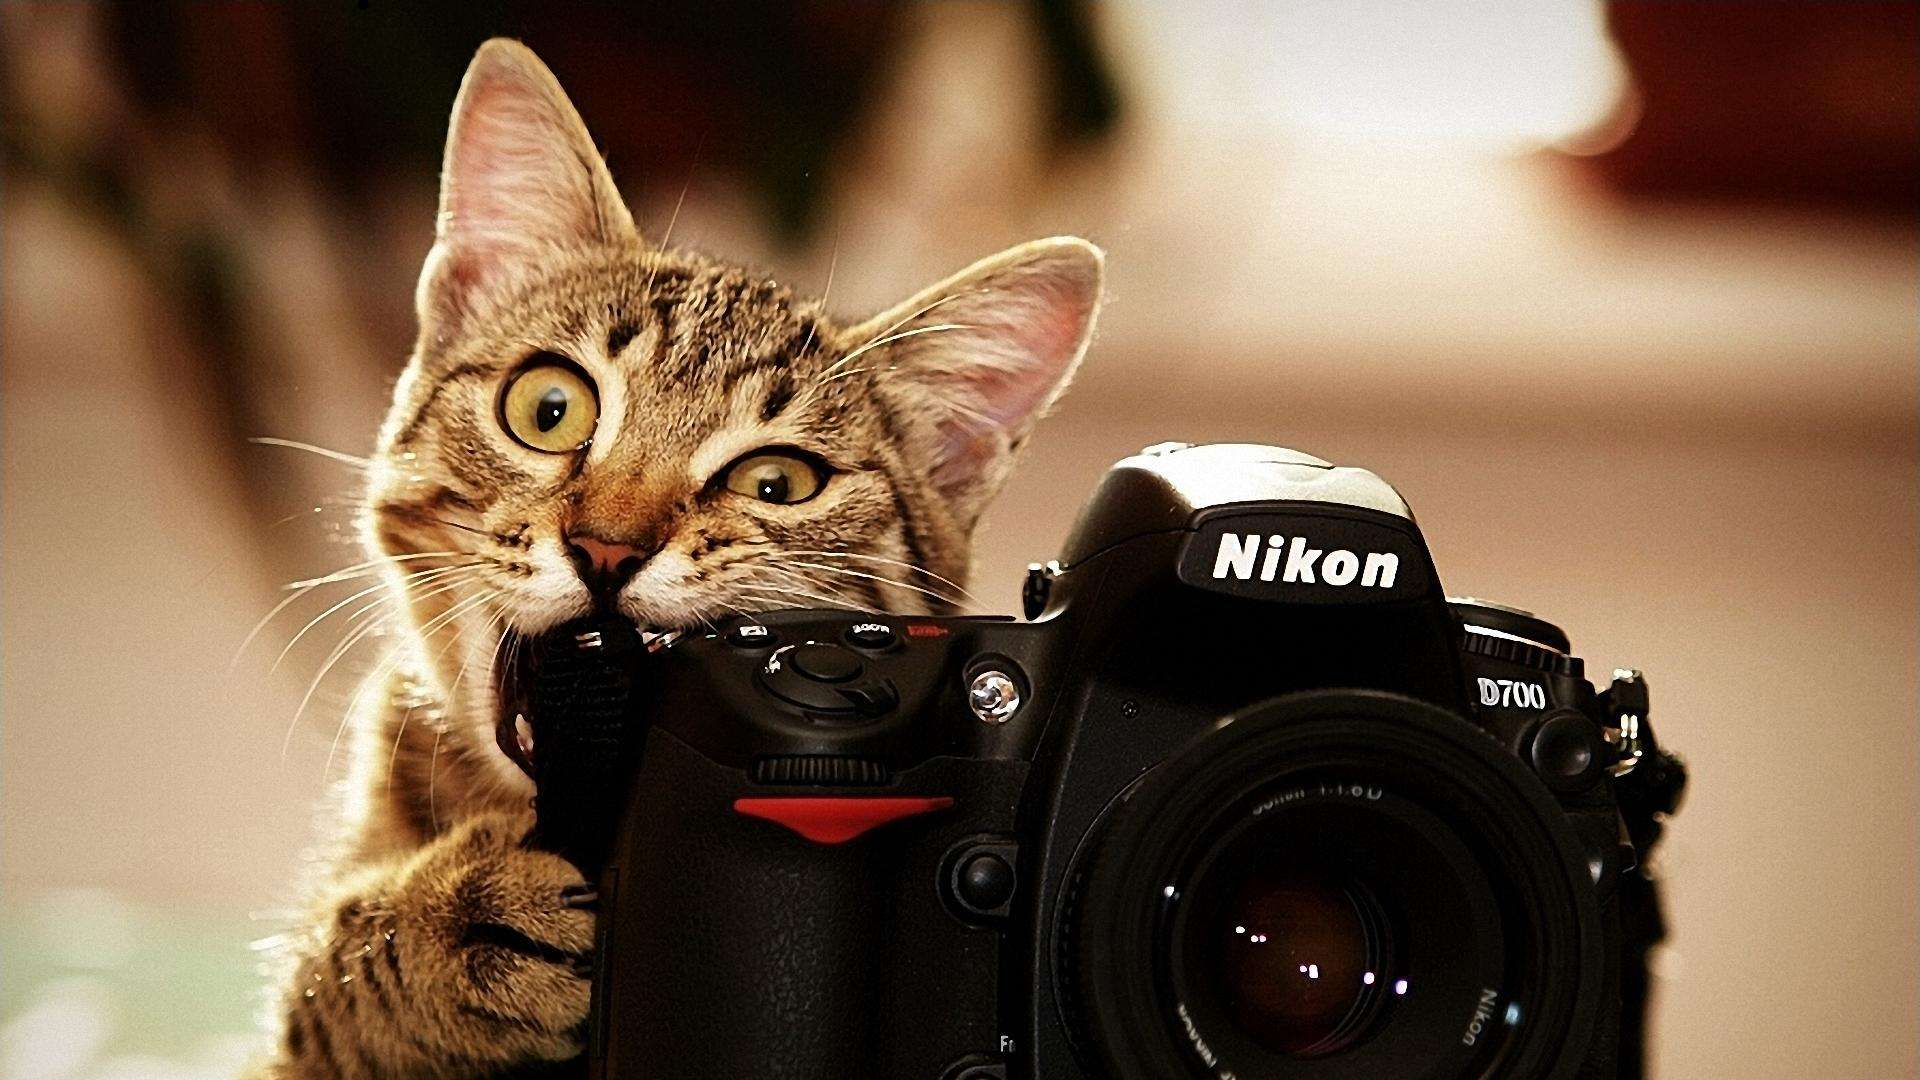 Hd wallpaper cat - Cat Hd Wallpapers For Pc Amazing Wallpaperz 1920 1080